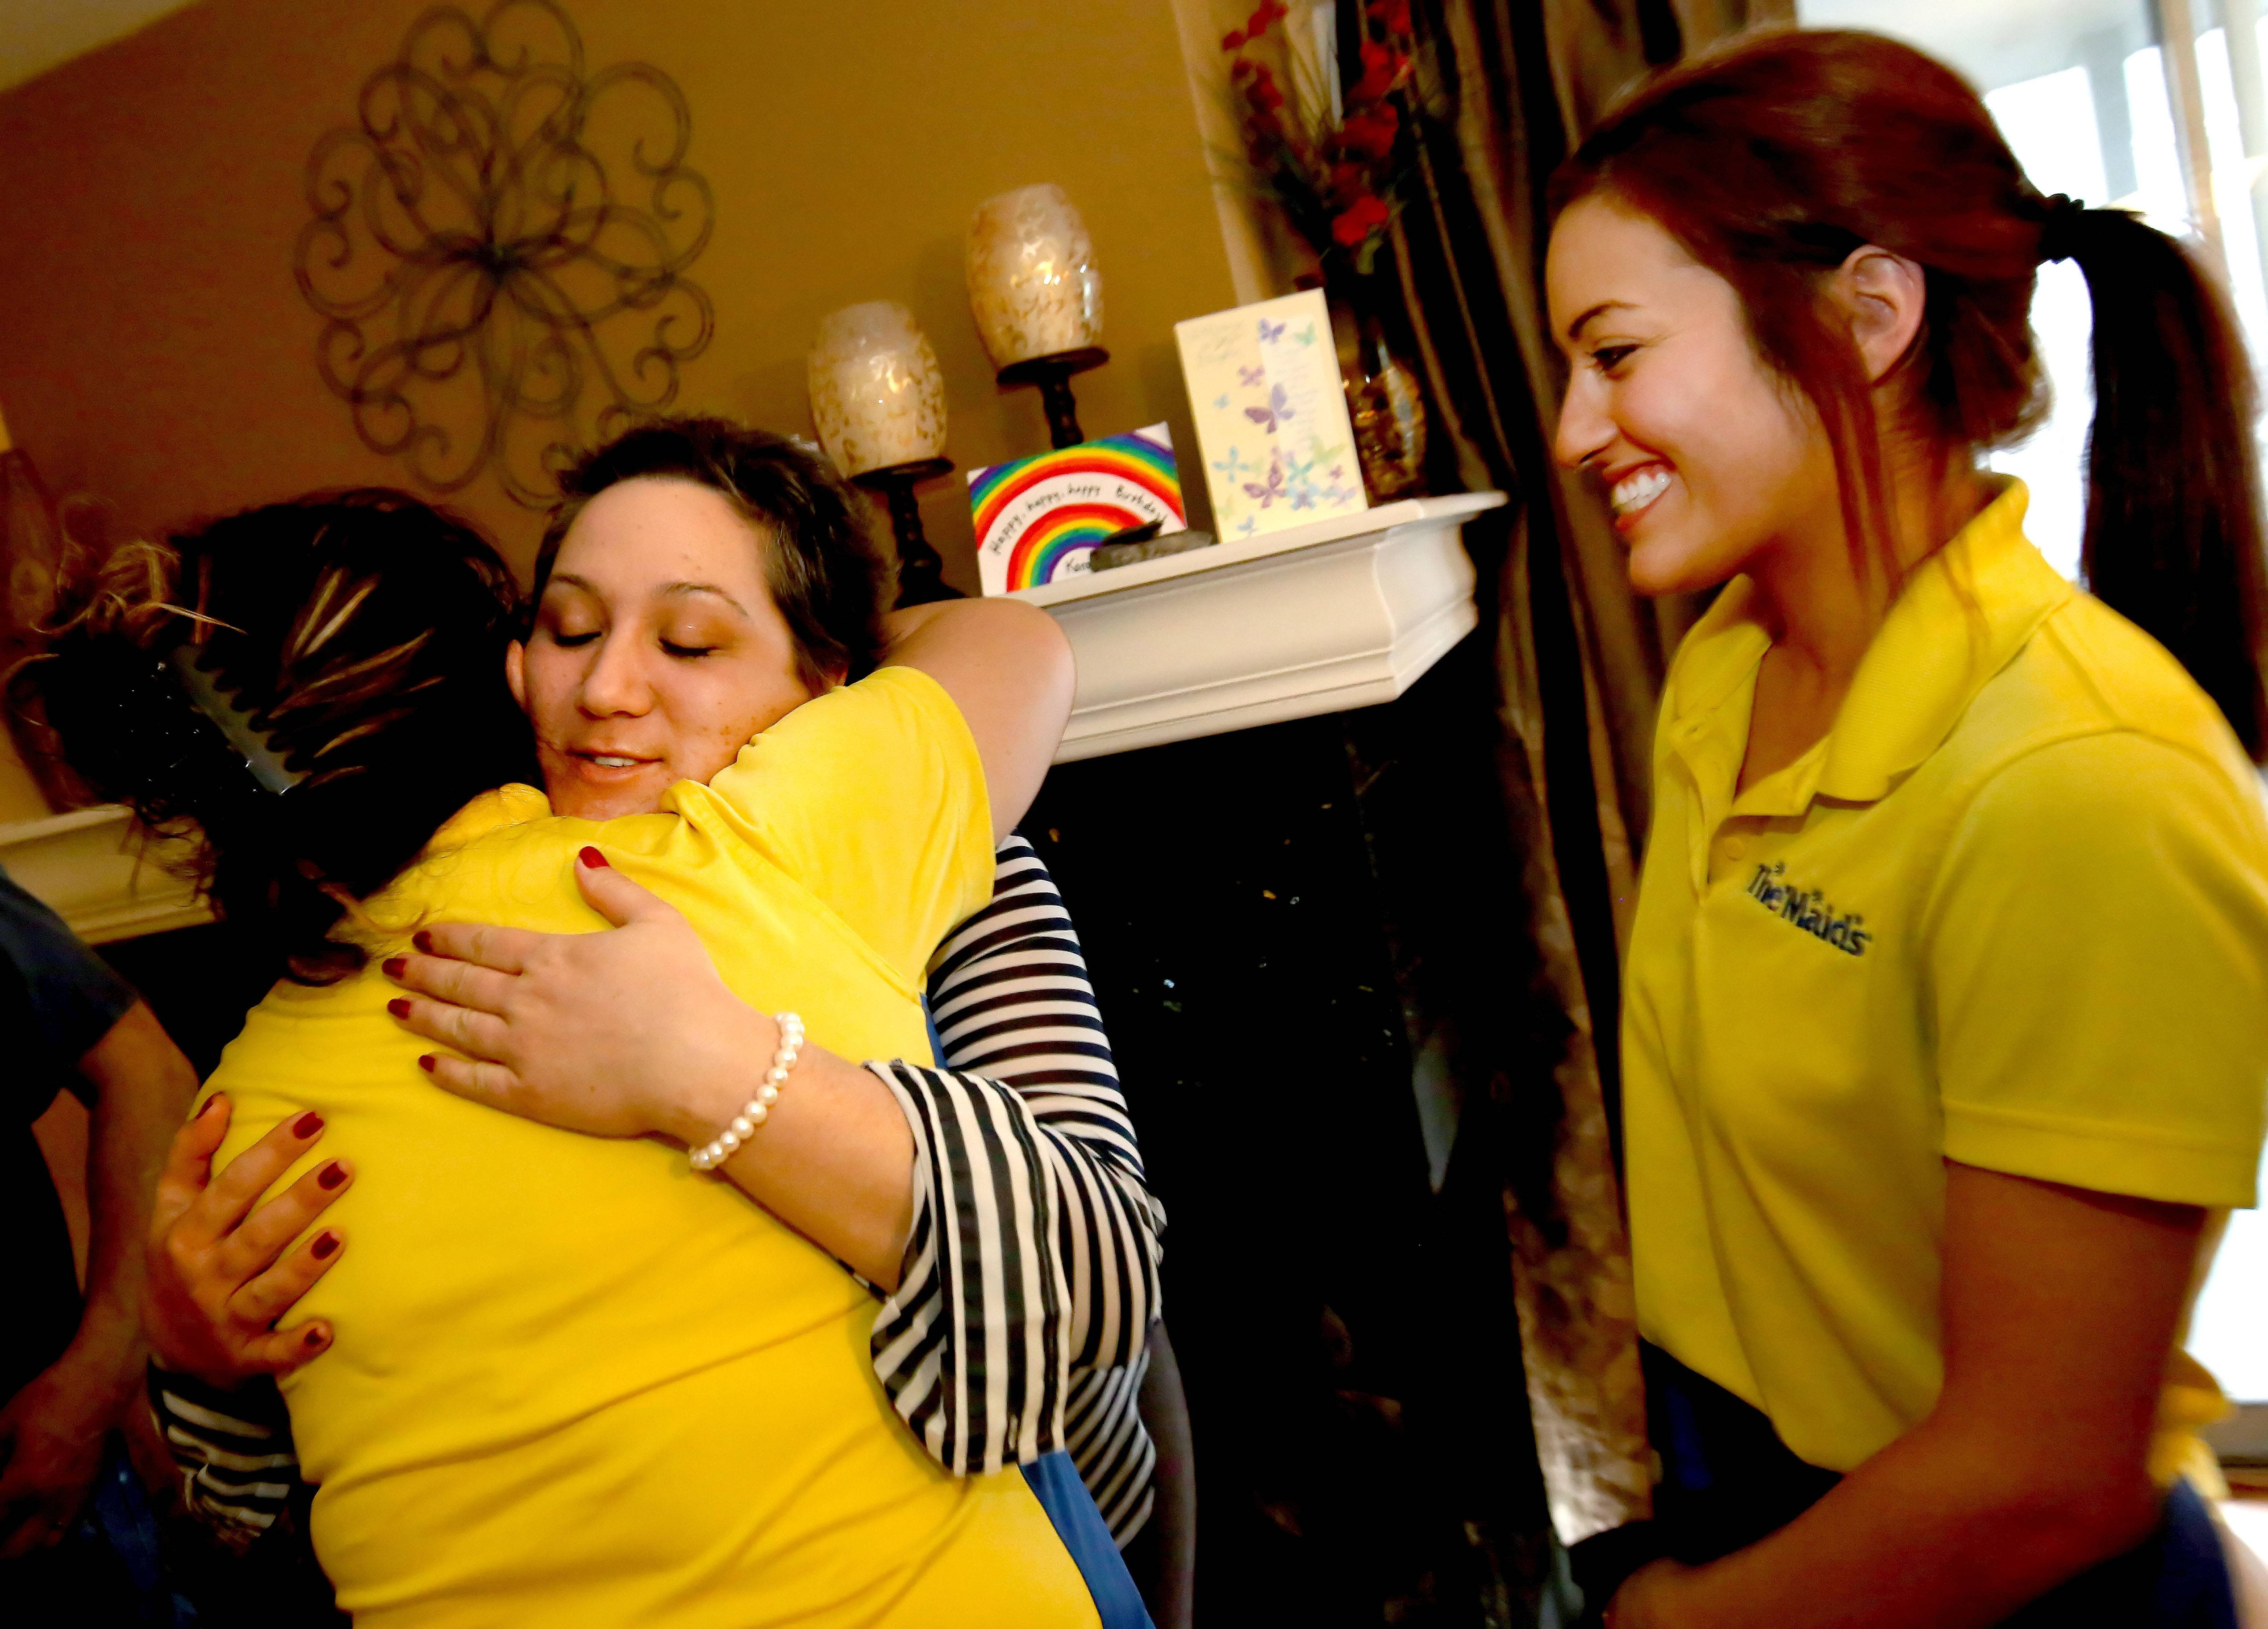 Kara Colantuono gives Sarah Buhle of The Maids of DuPage County a hug as Aracelli Garcia, right, looks on, after they cleaned Colantuono's condo in Wheaton. The maid service is partnering with Cleaning for a Reason Foundation to provide free house cleaning services to women undergoing cancer treatment.